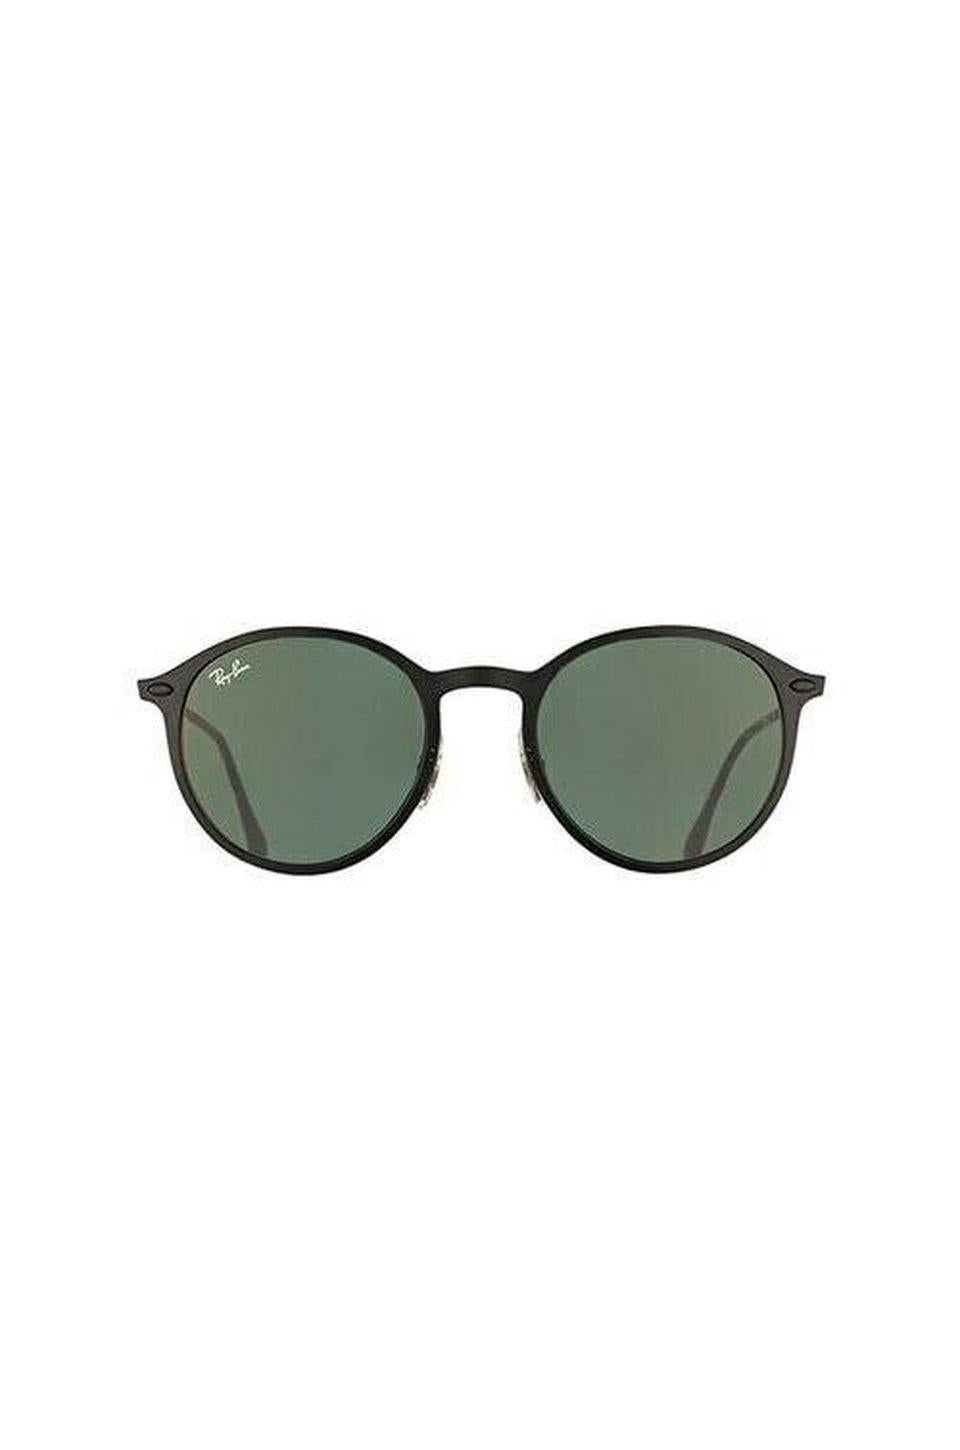 Ray-Ban RB4224 Round Light Ray Sunglasses In Black & Green